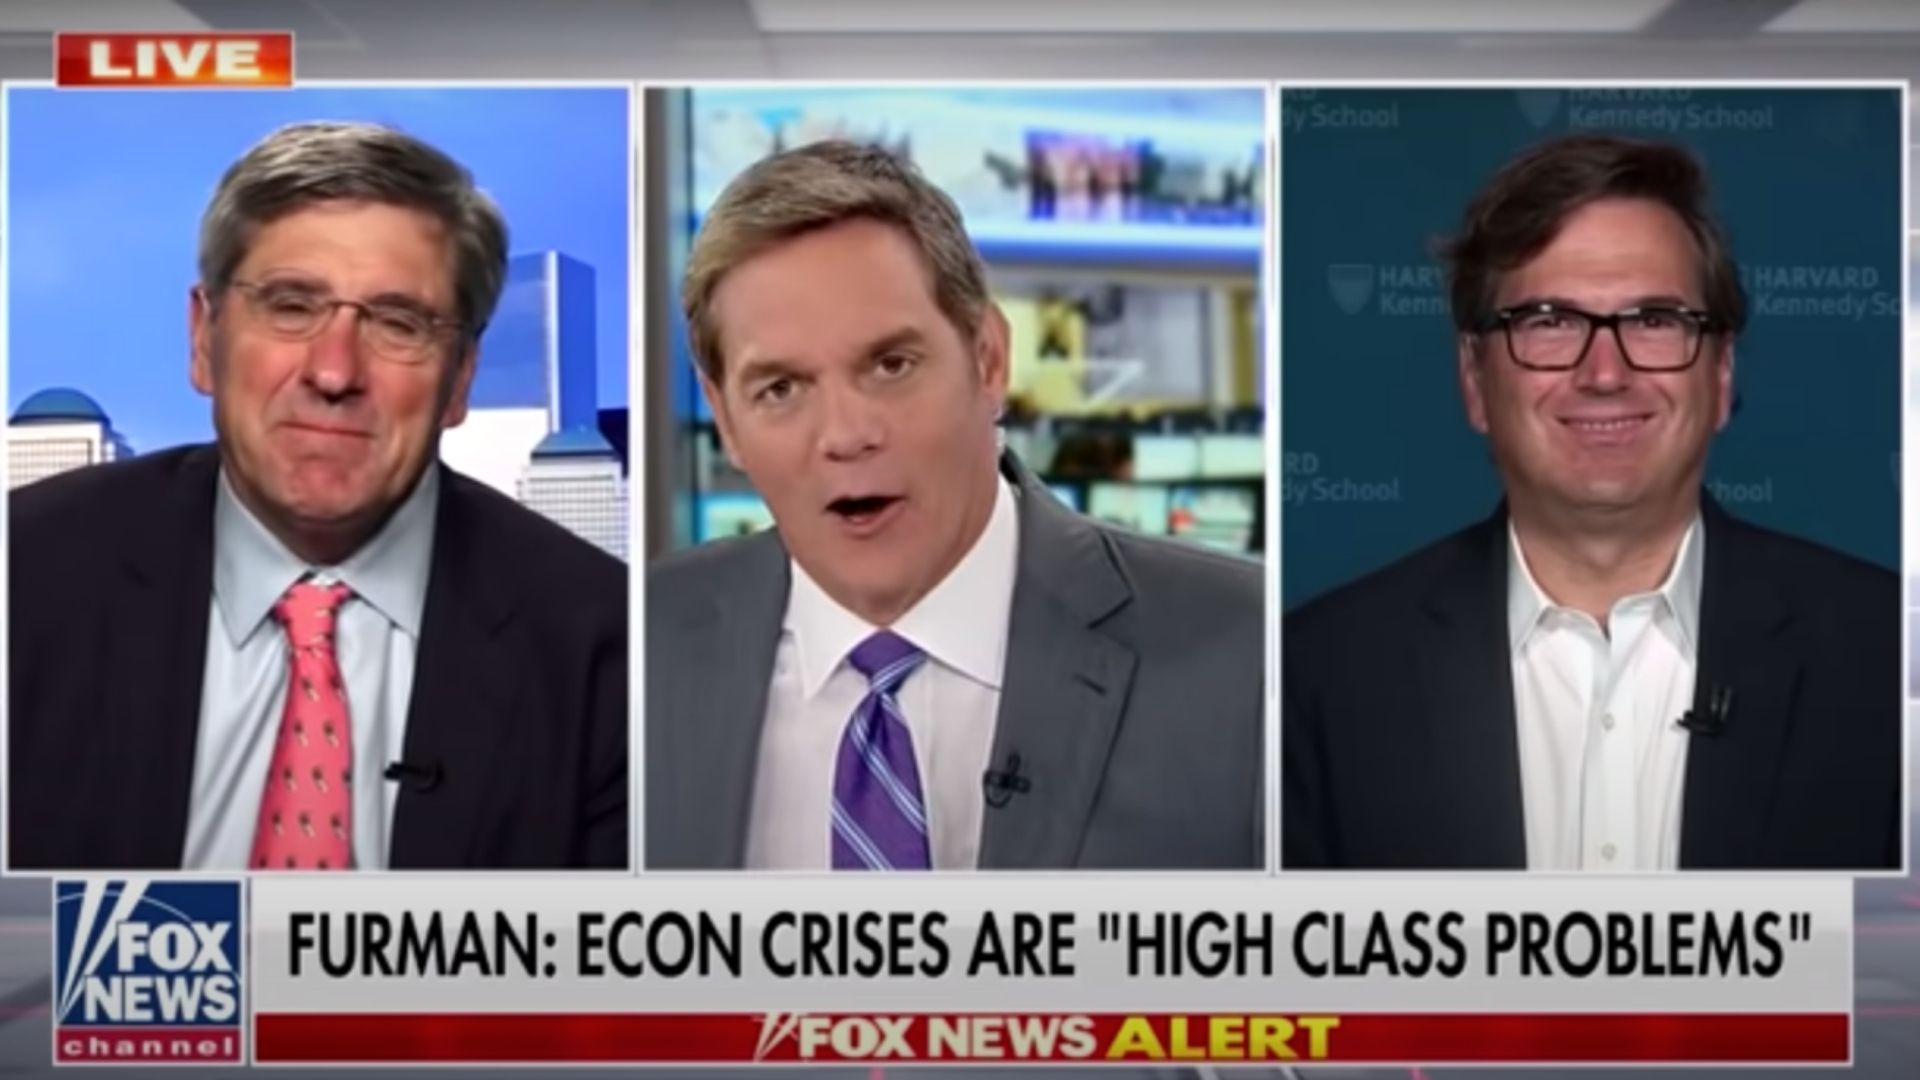 Fox News' Bill Hemmer Blasts Guest Who Called Inflation, Supply Chain Chaos 'High Class Problems'